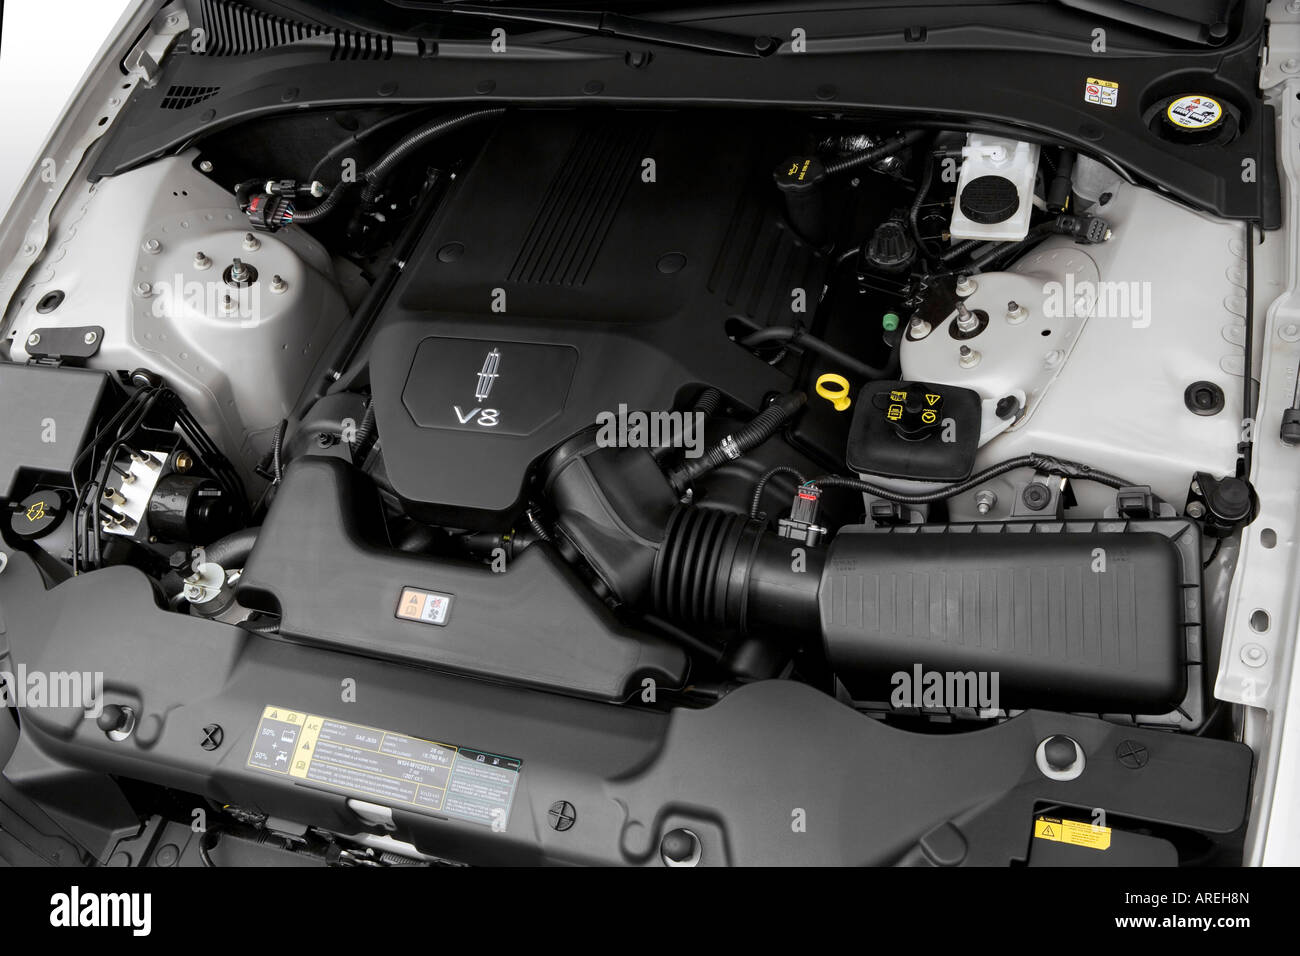 Ford 3 Valve Engine Diagram 2006 Lincoln Ls V8 Sport In Silver Engine Stock Photo